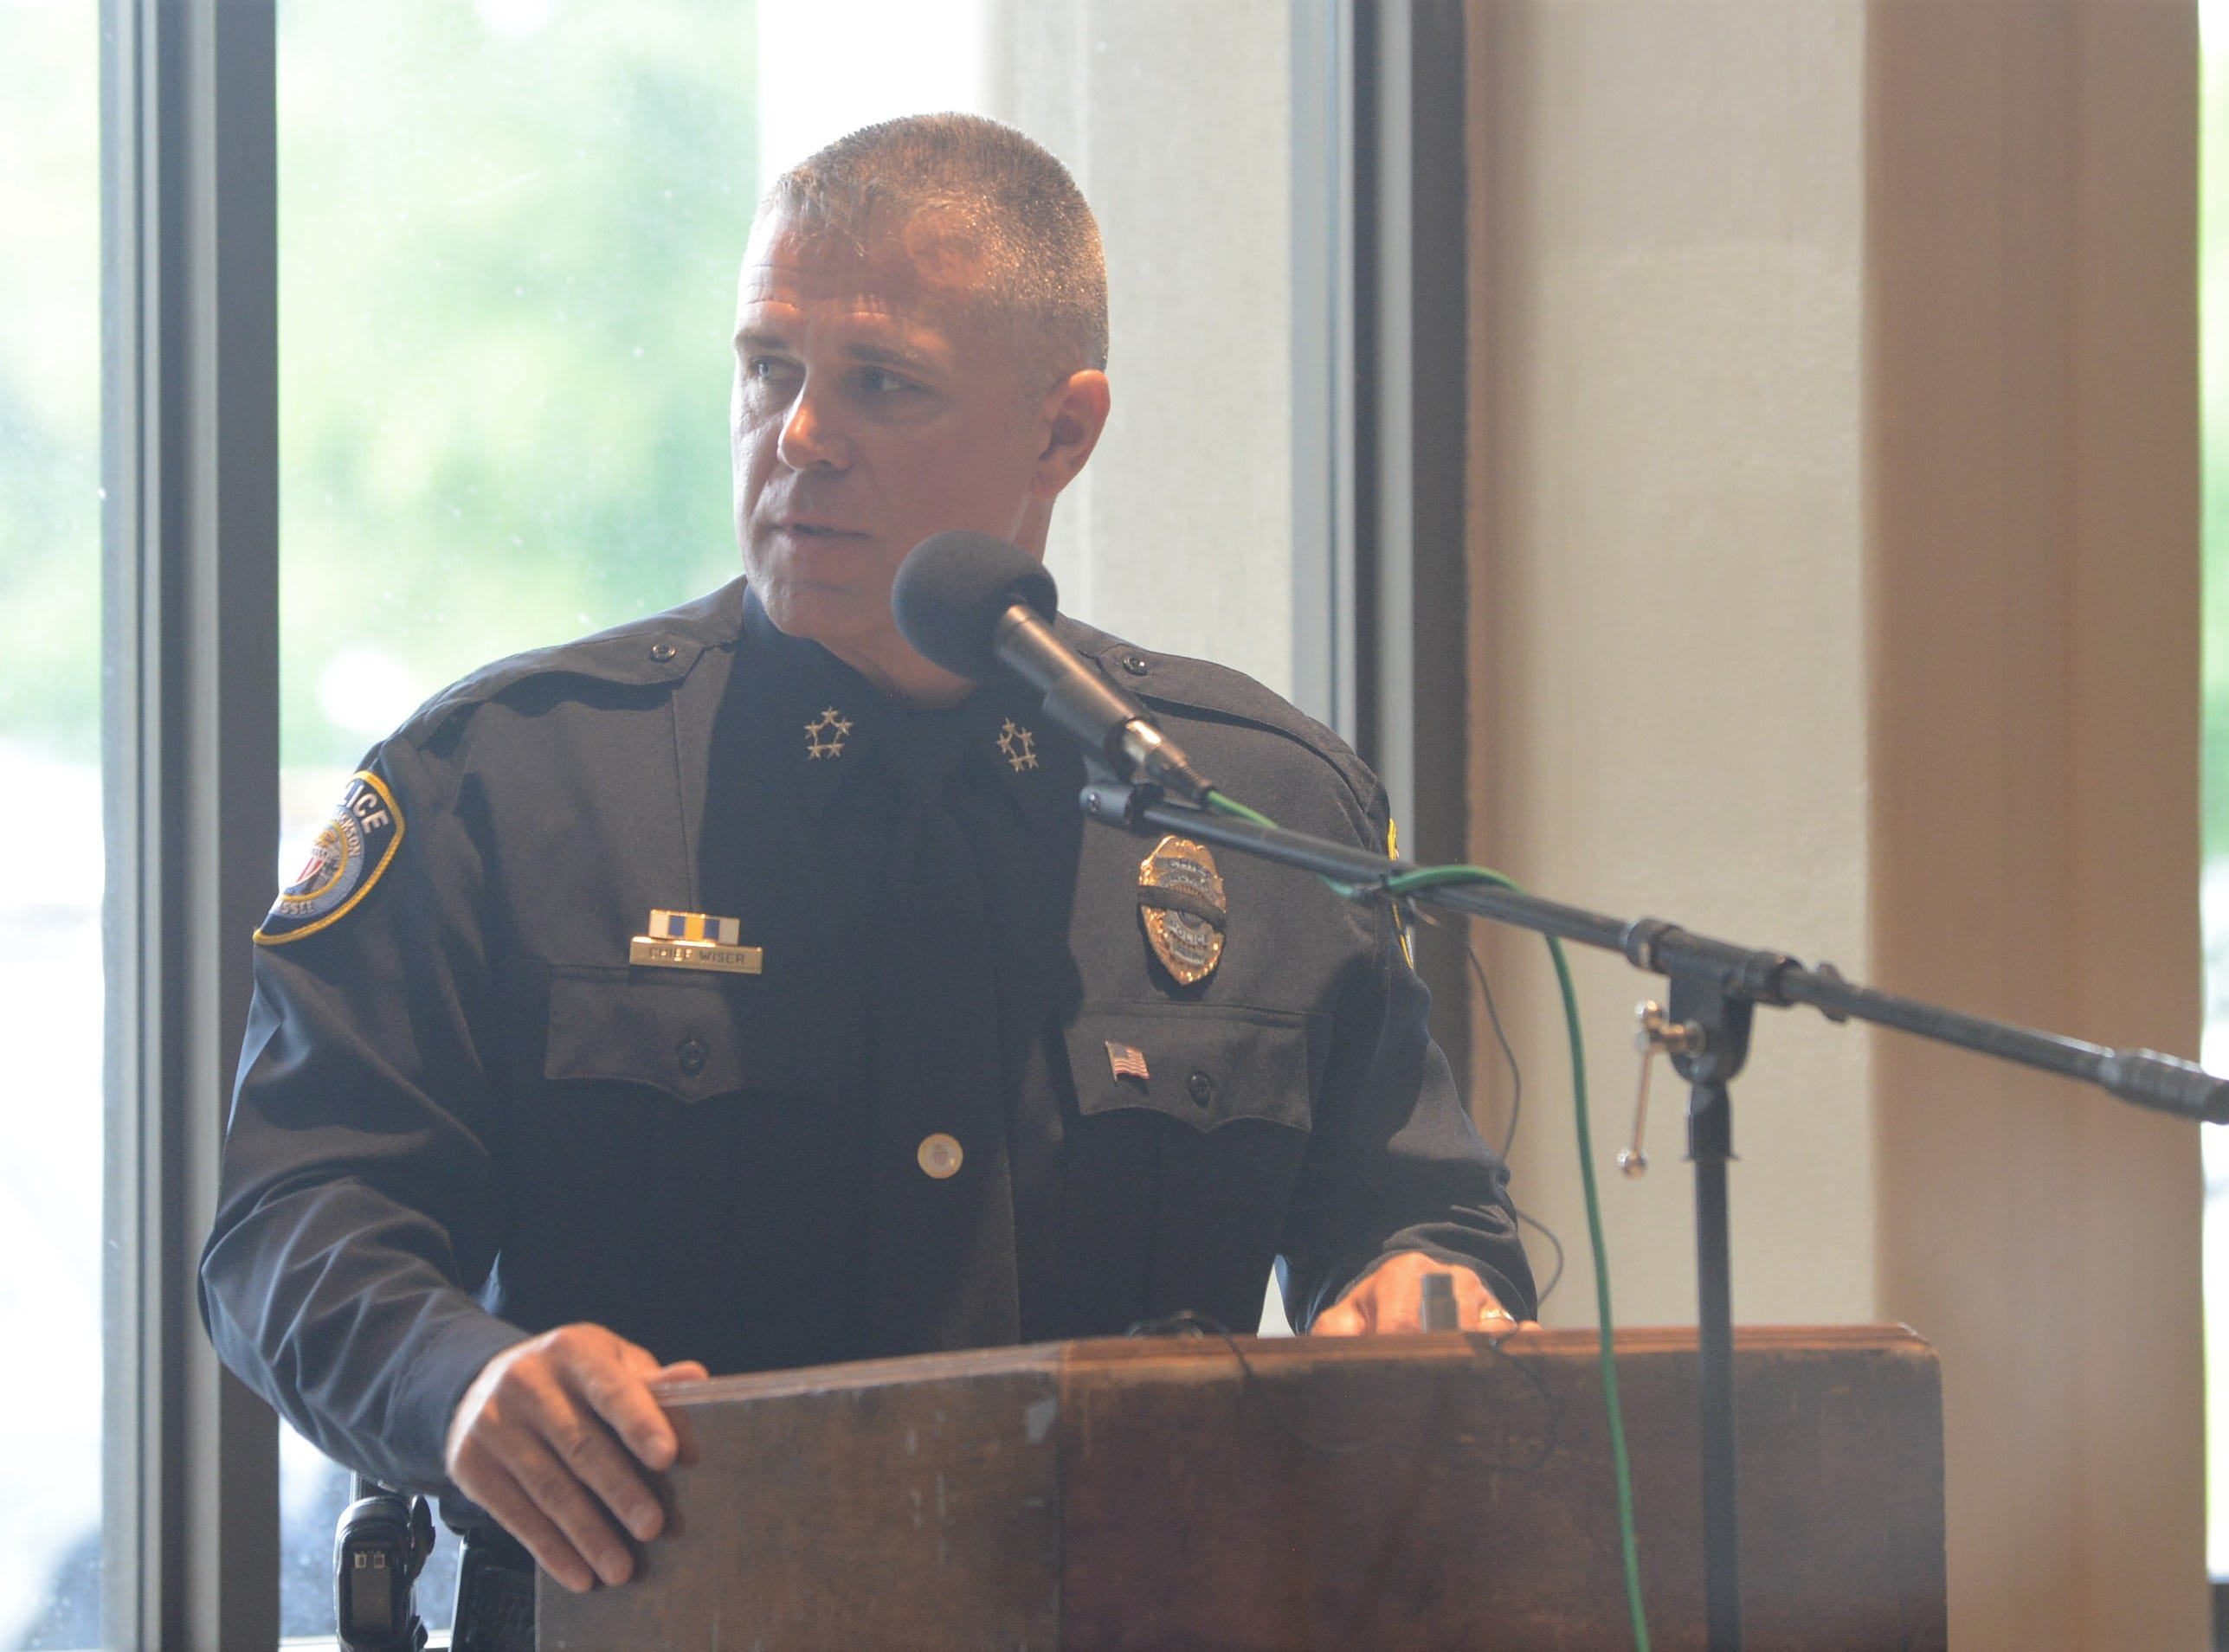 Jackson Police Chief Julien Wiser speaks at the National Law Enforcement Memorial Service at the Carl Perkins Civic Center in Jackson on Wednesday, May 15, 2019.